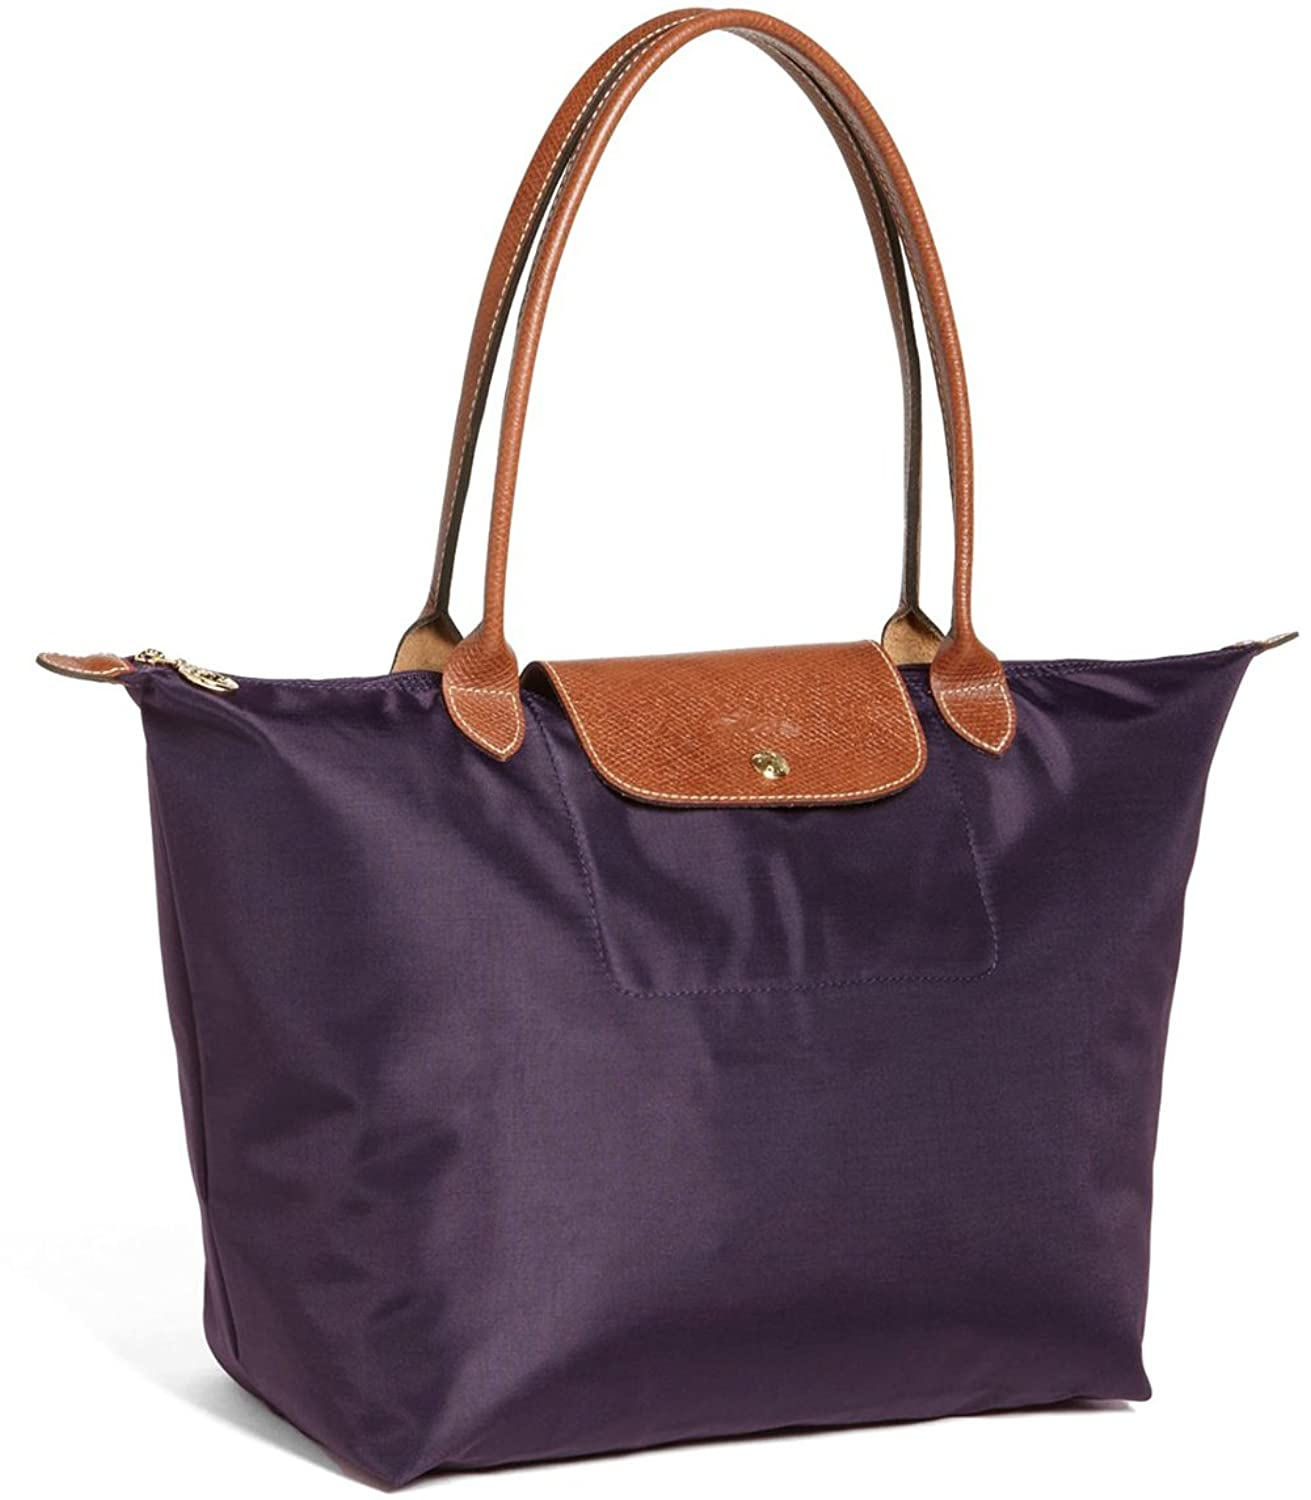 Longchamp Bag Le Pliage Colours : Best color for longchamp le pliage bags uk